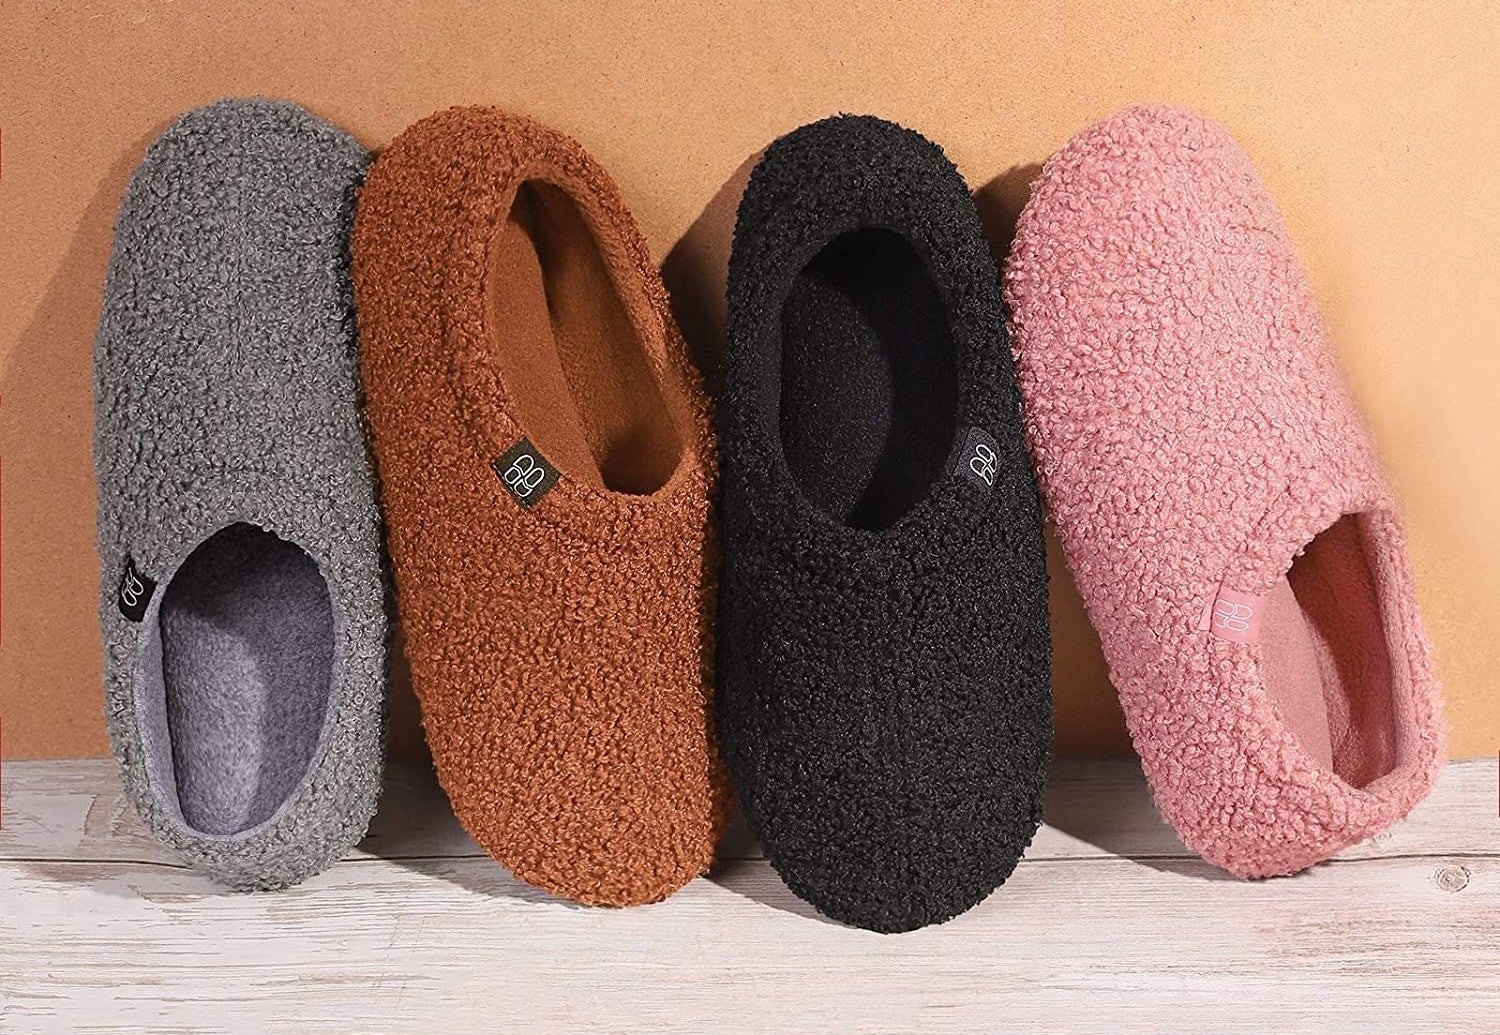 four pairs of different colored fuzzy slippers